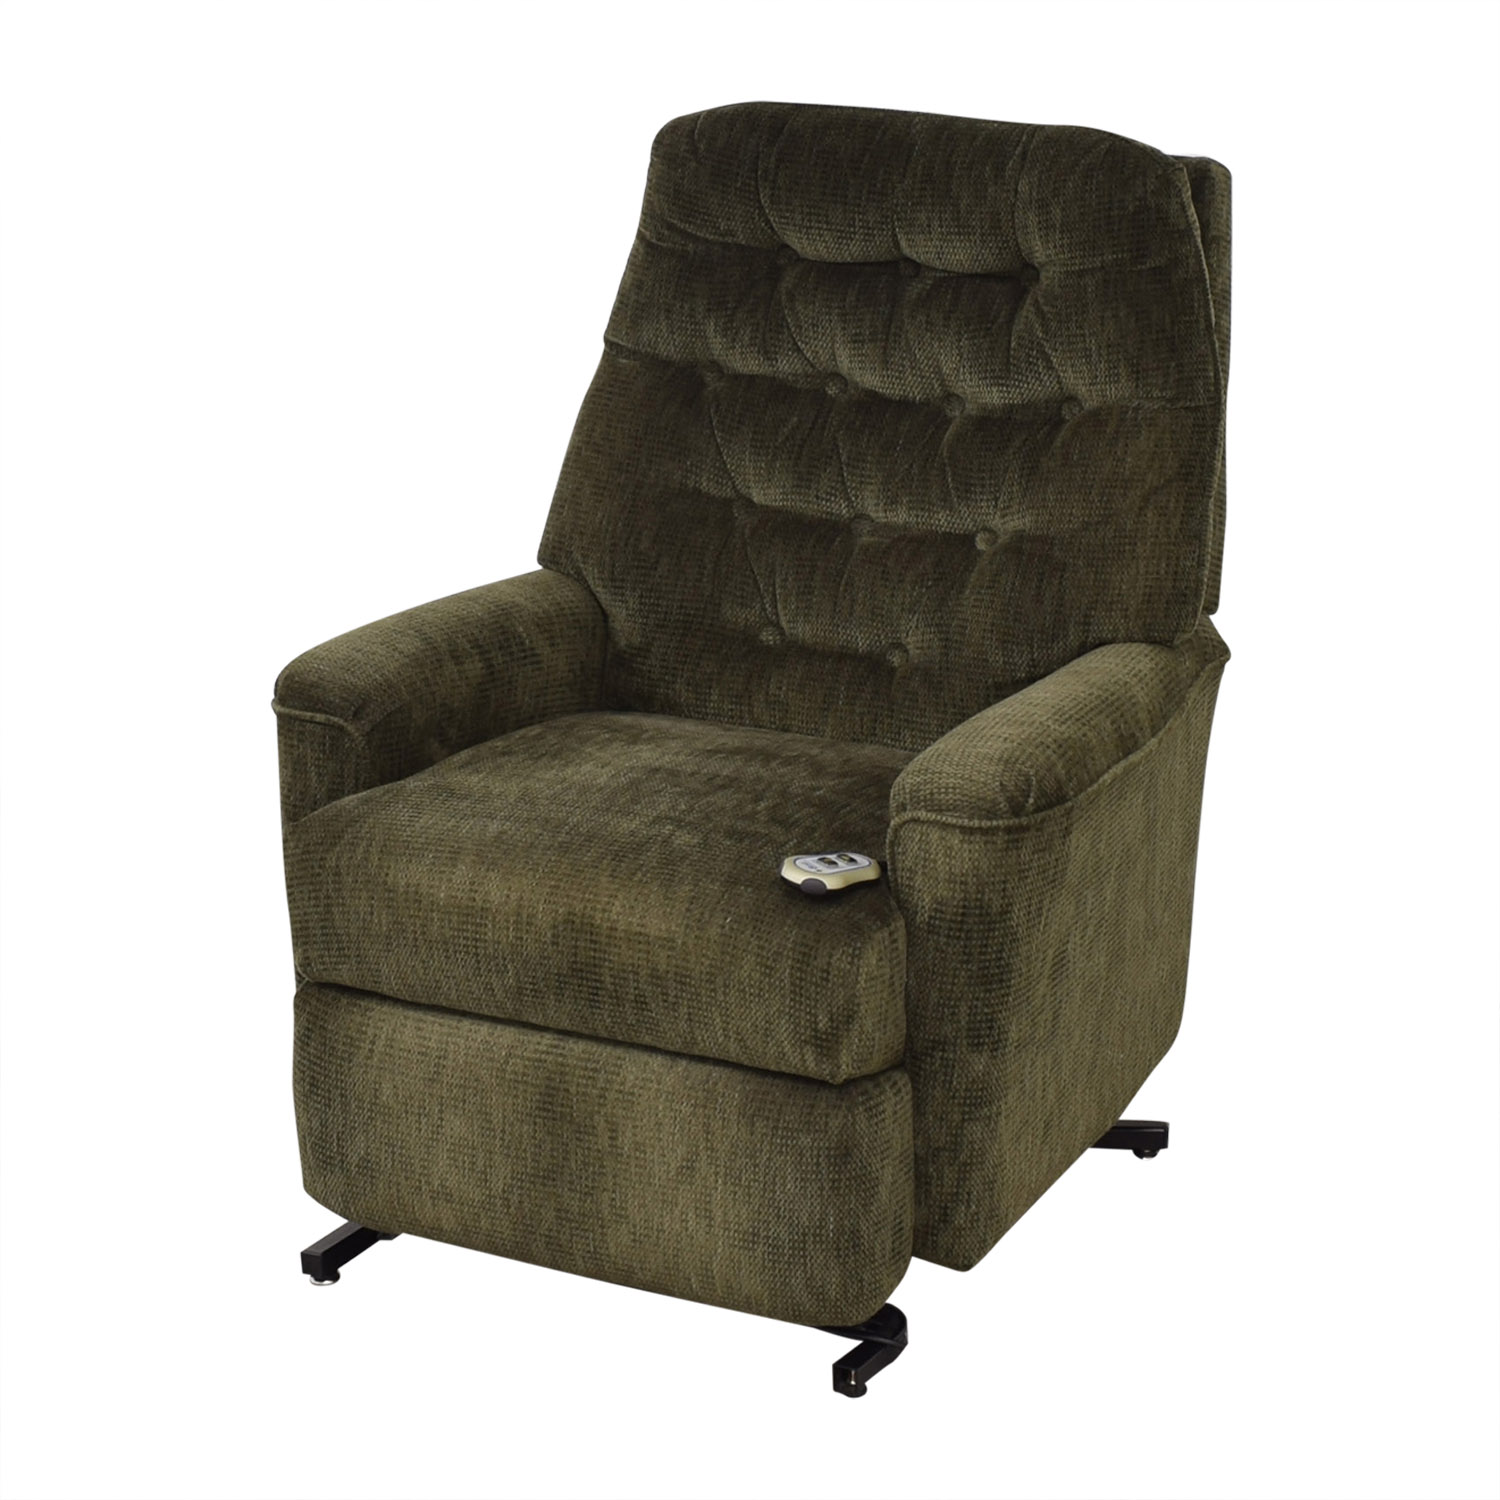 Best Chairs Power Lift Recliner Best Chairs